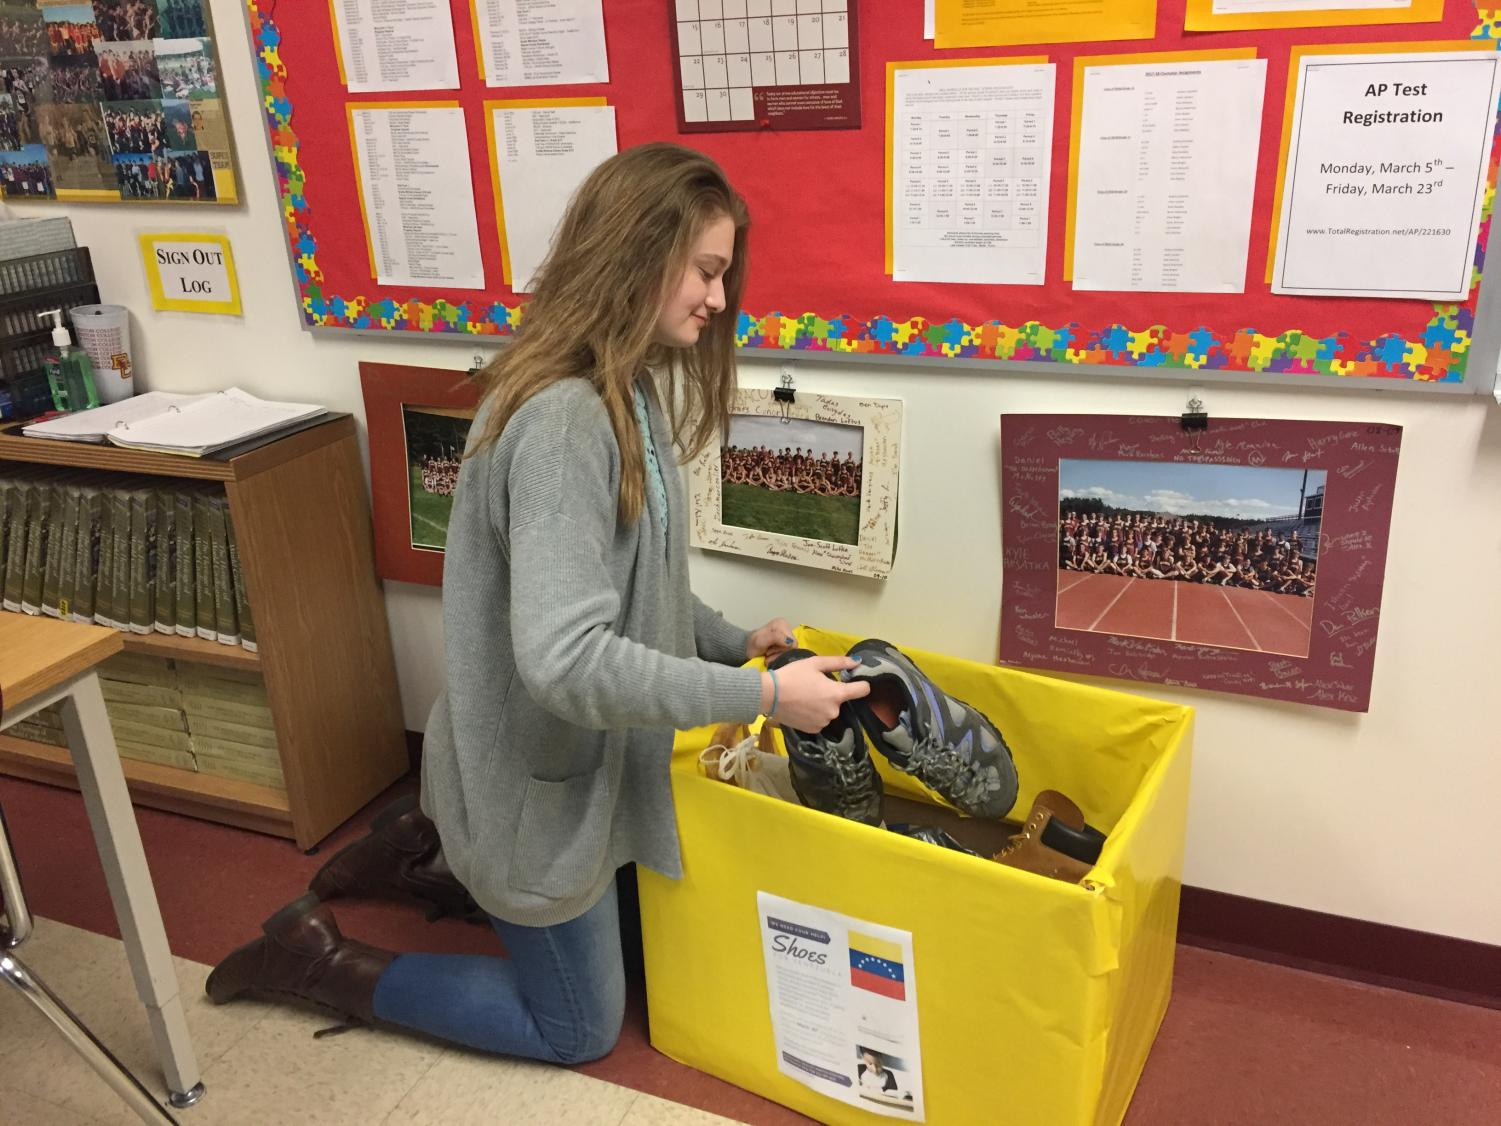 Junior Anna Hoskins placed boxes in classrooms around the school in efforts to collect shoes for children in Venezuela.